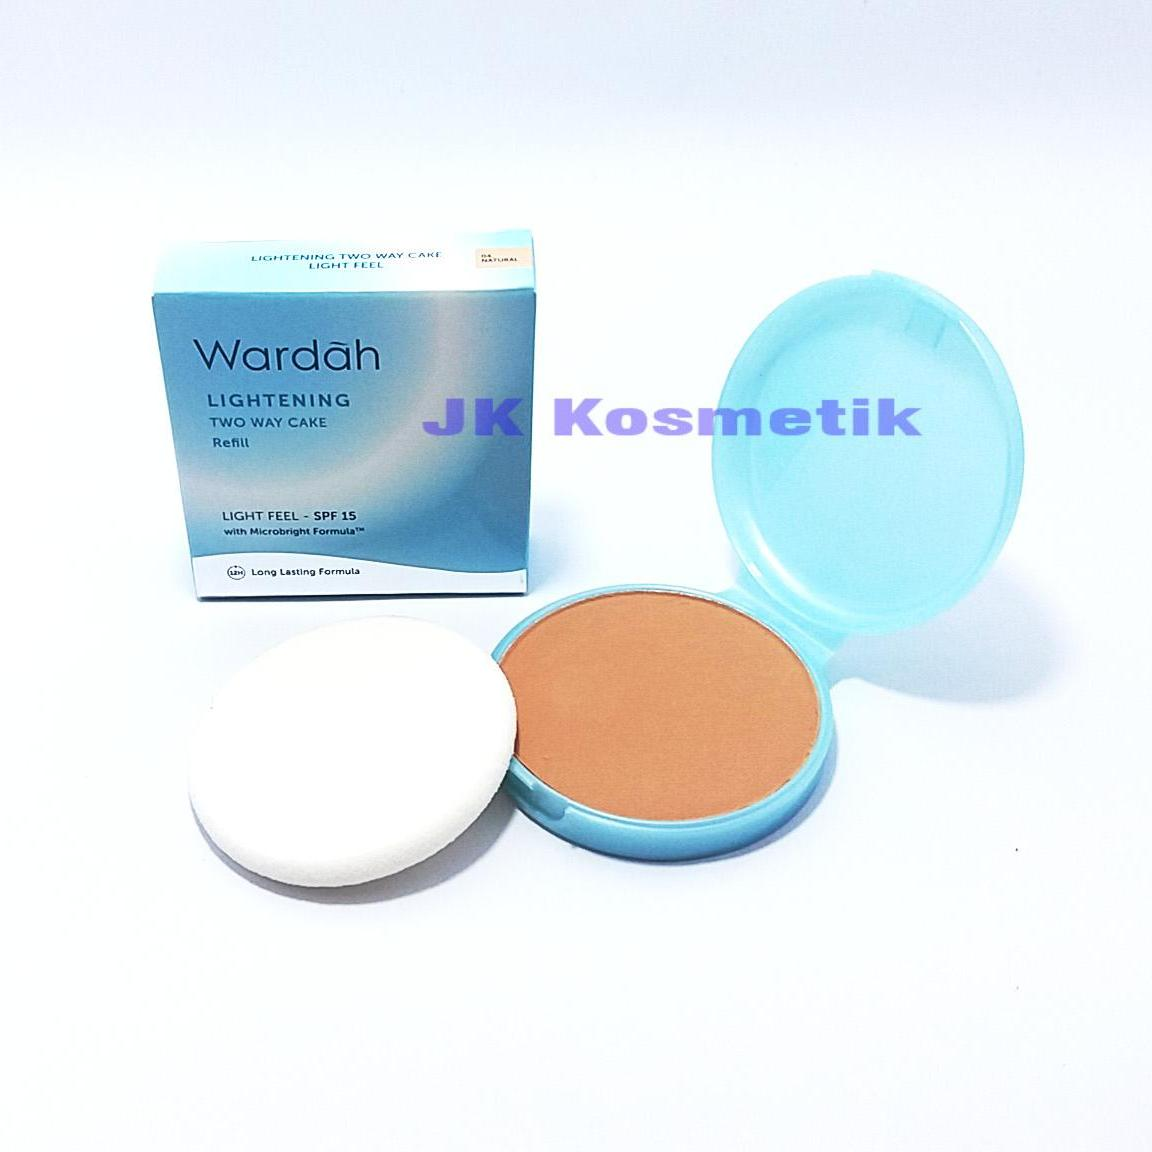 Kelebihan Wardah Lightening Bedak Tabur Loose Powder 04 Natural Twc Exclusive Padat Recommended Refill Light Feel